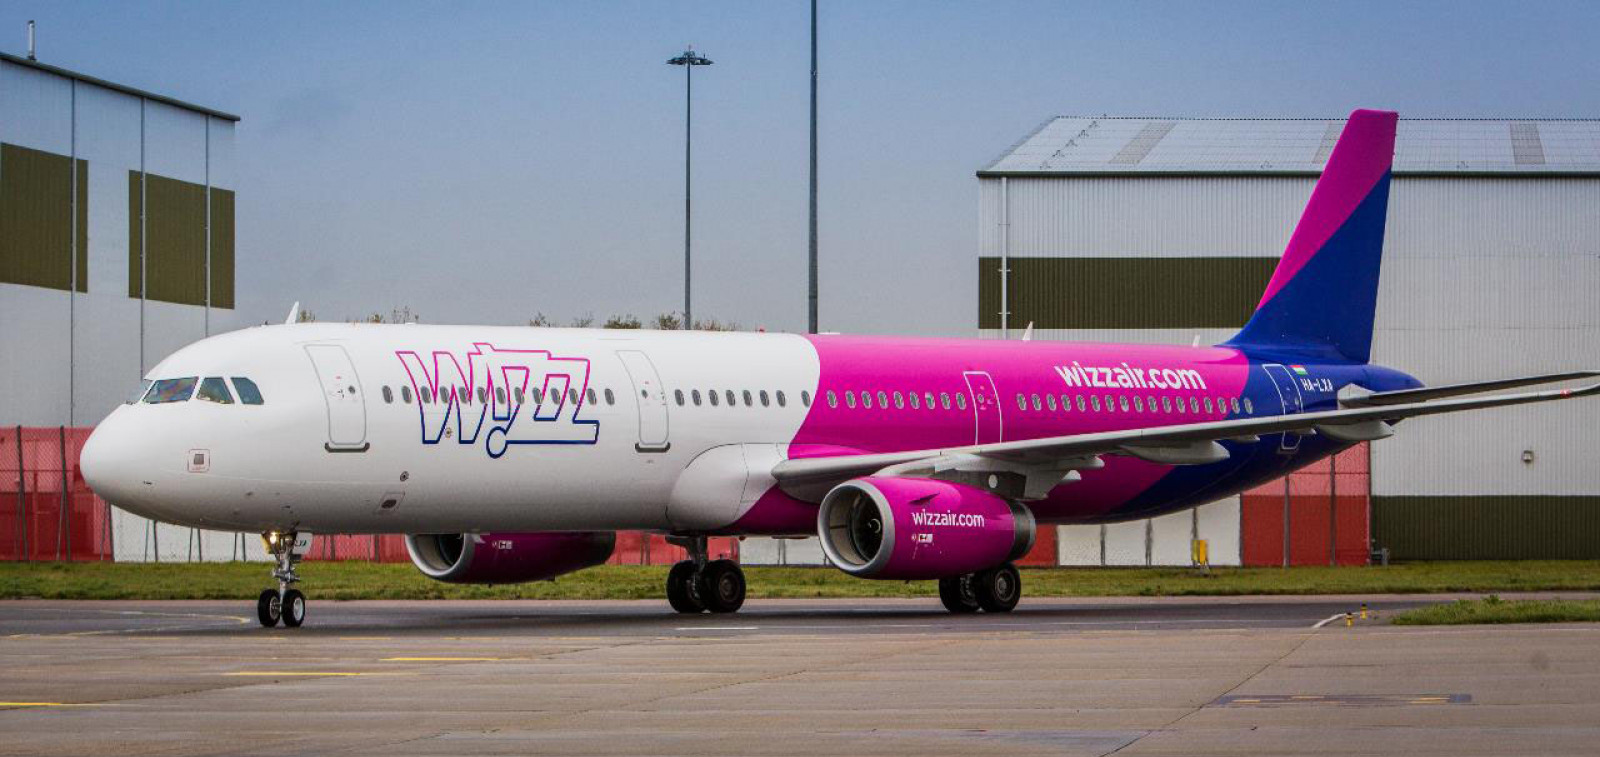 Wizz Air's white, pink and blue covered airplane stands at the airport in front of the airport buildings.